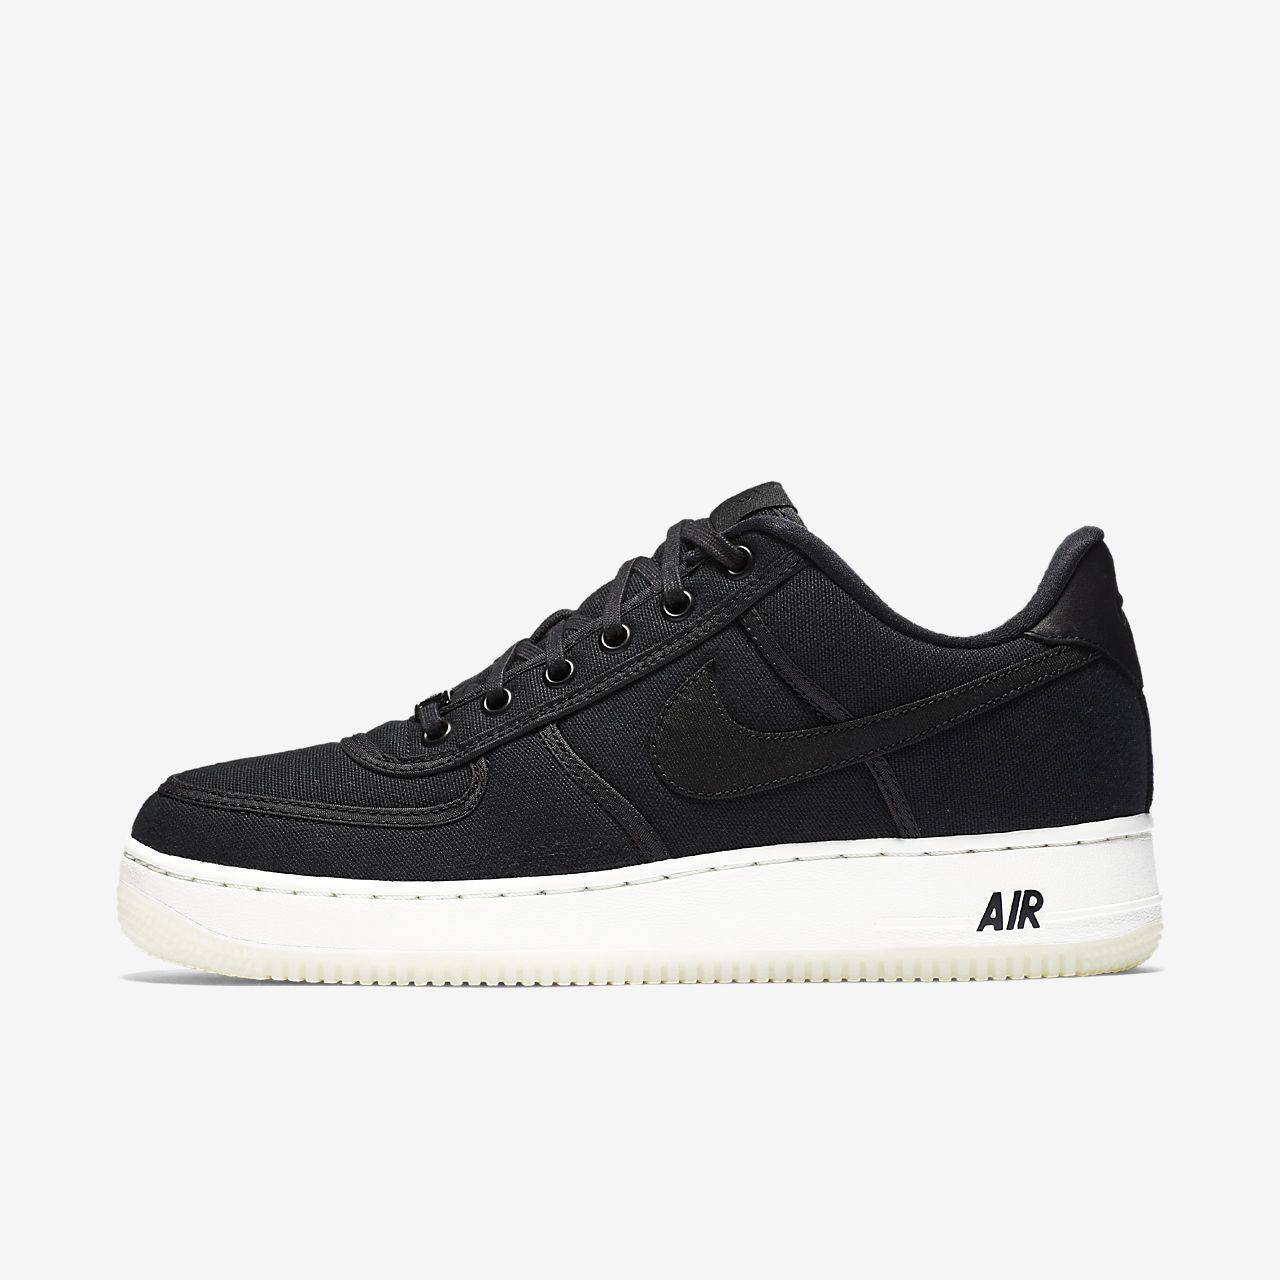 reputable site 20703 e00dc Chaussure Nike Air Force 1 Low Retro QS pour Homme. Nike.com BE